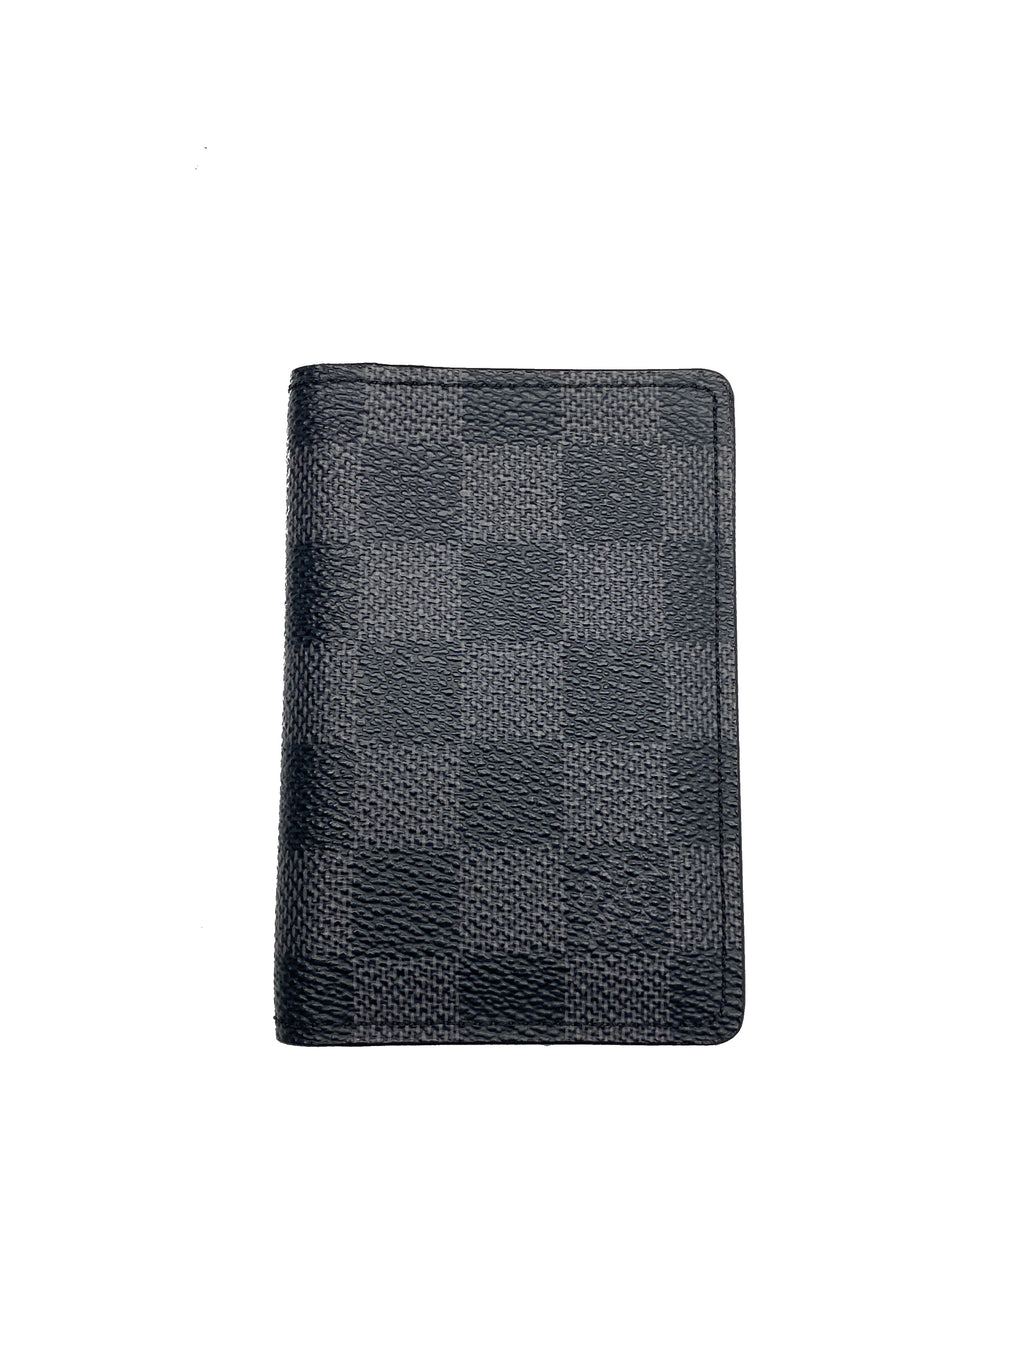 LOUIS VUITTON - POCKET ORGANISER WALLET IN DAMIER GRAPHITE